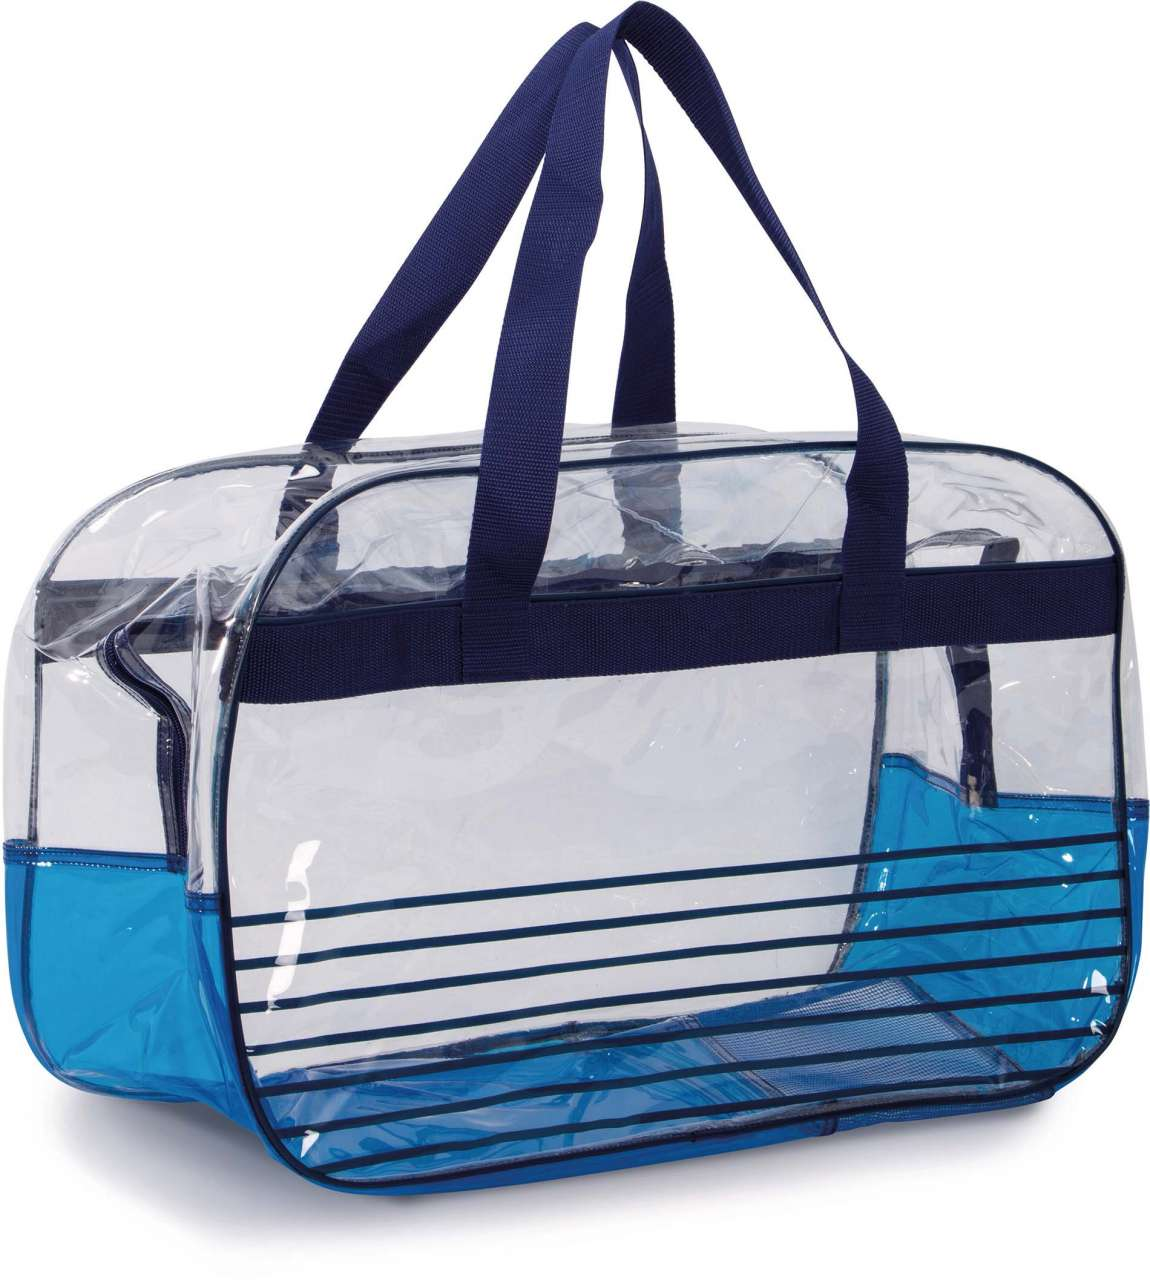 BEACH BAG WITH ANTI-SAND SYSTEM